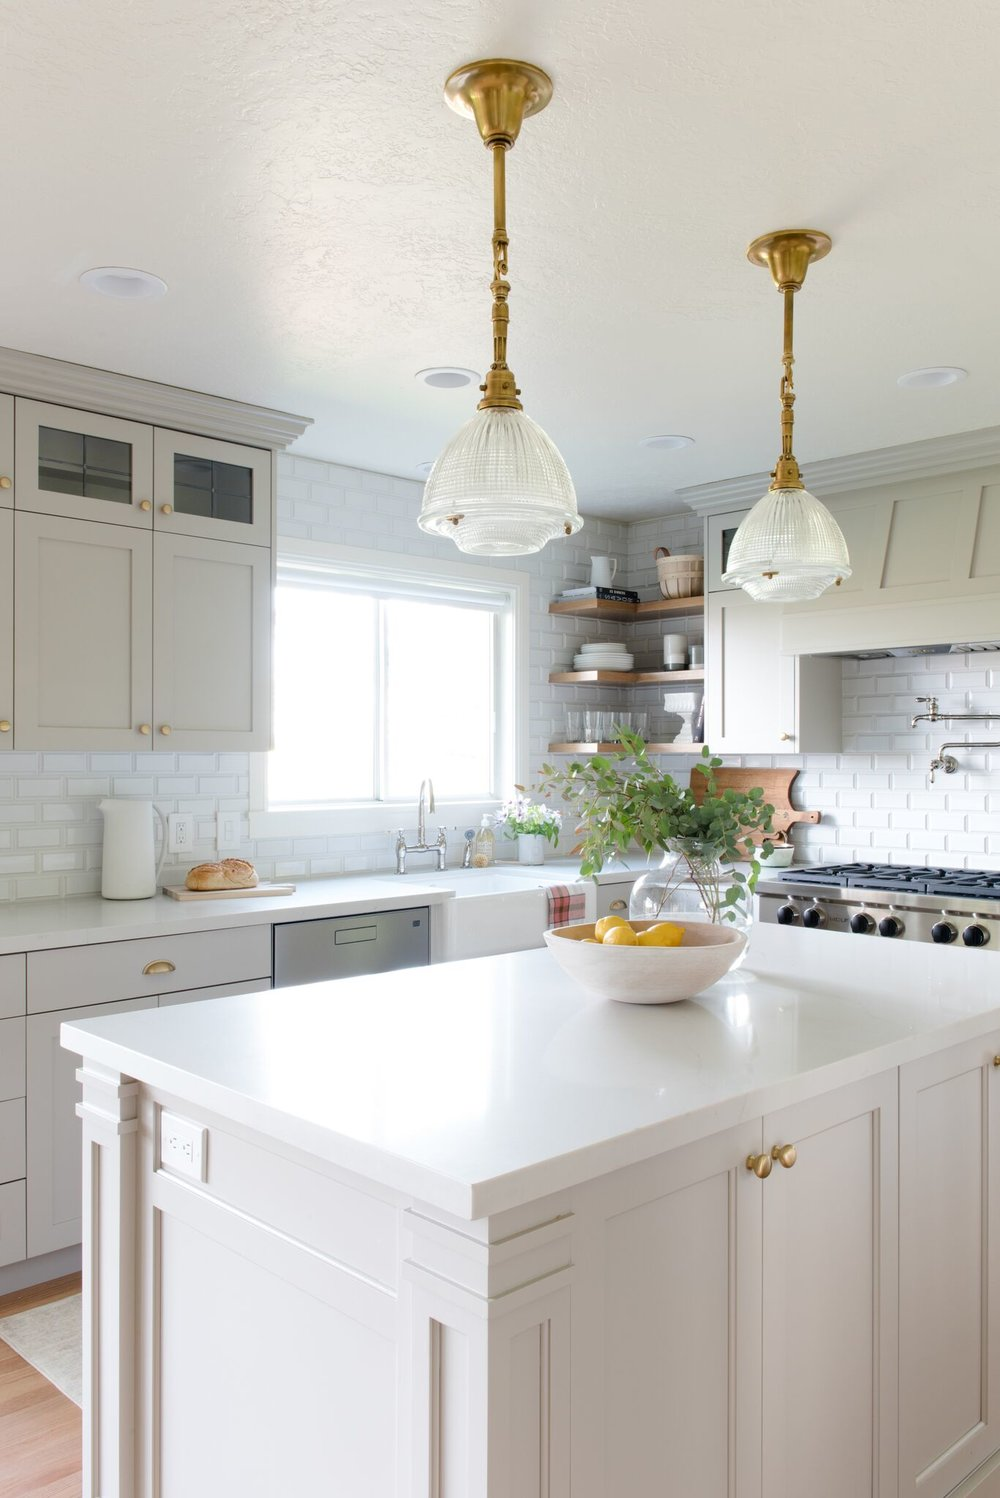 From our Evergreen Kitchen Remodel